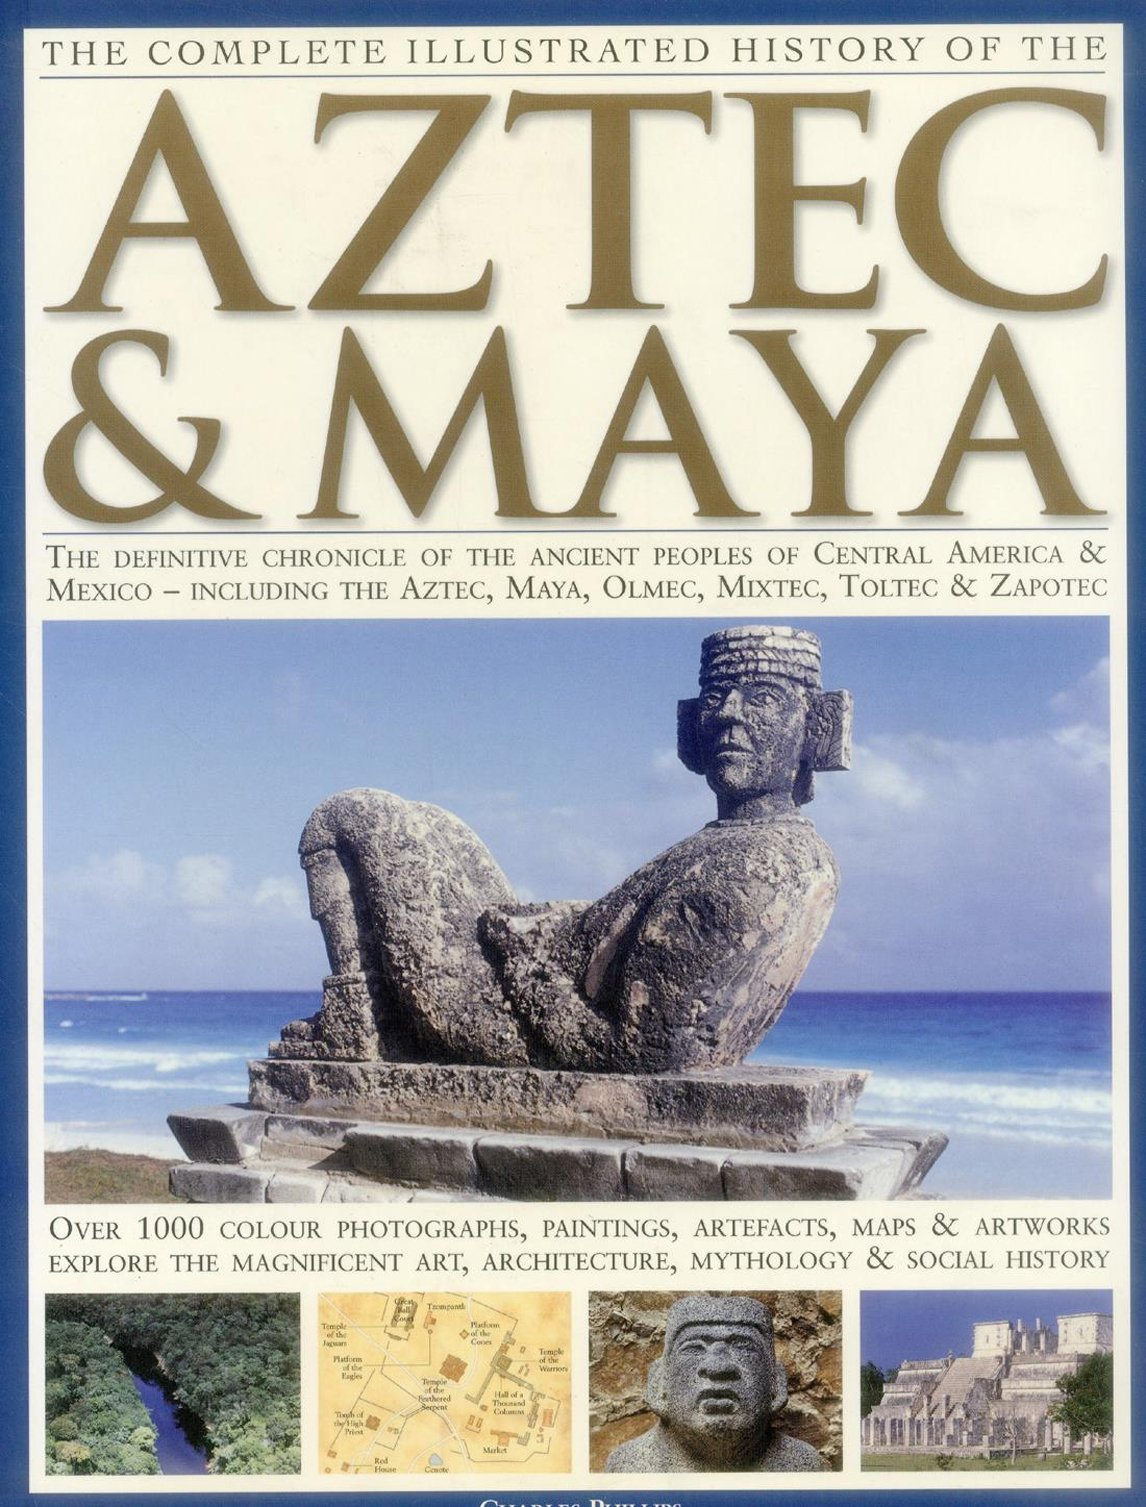 The complete illustrated history of the aztec maya the definitive the complete illustrated history of the aztec maya the definitive chronicle of the ancient peoples of central america mexico including the aztec buycottarizona Images